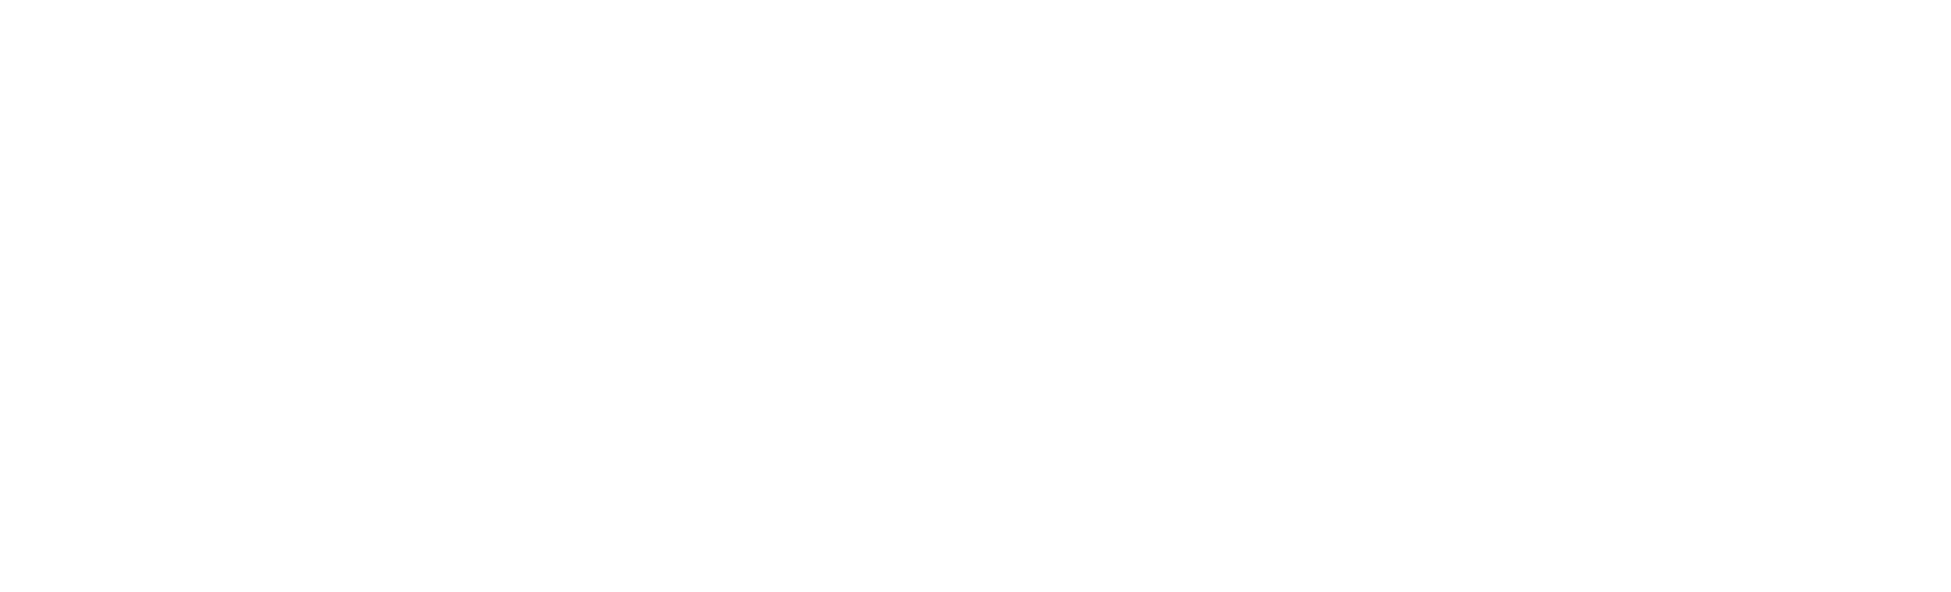 Voices Foundation logo